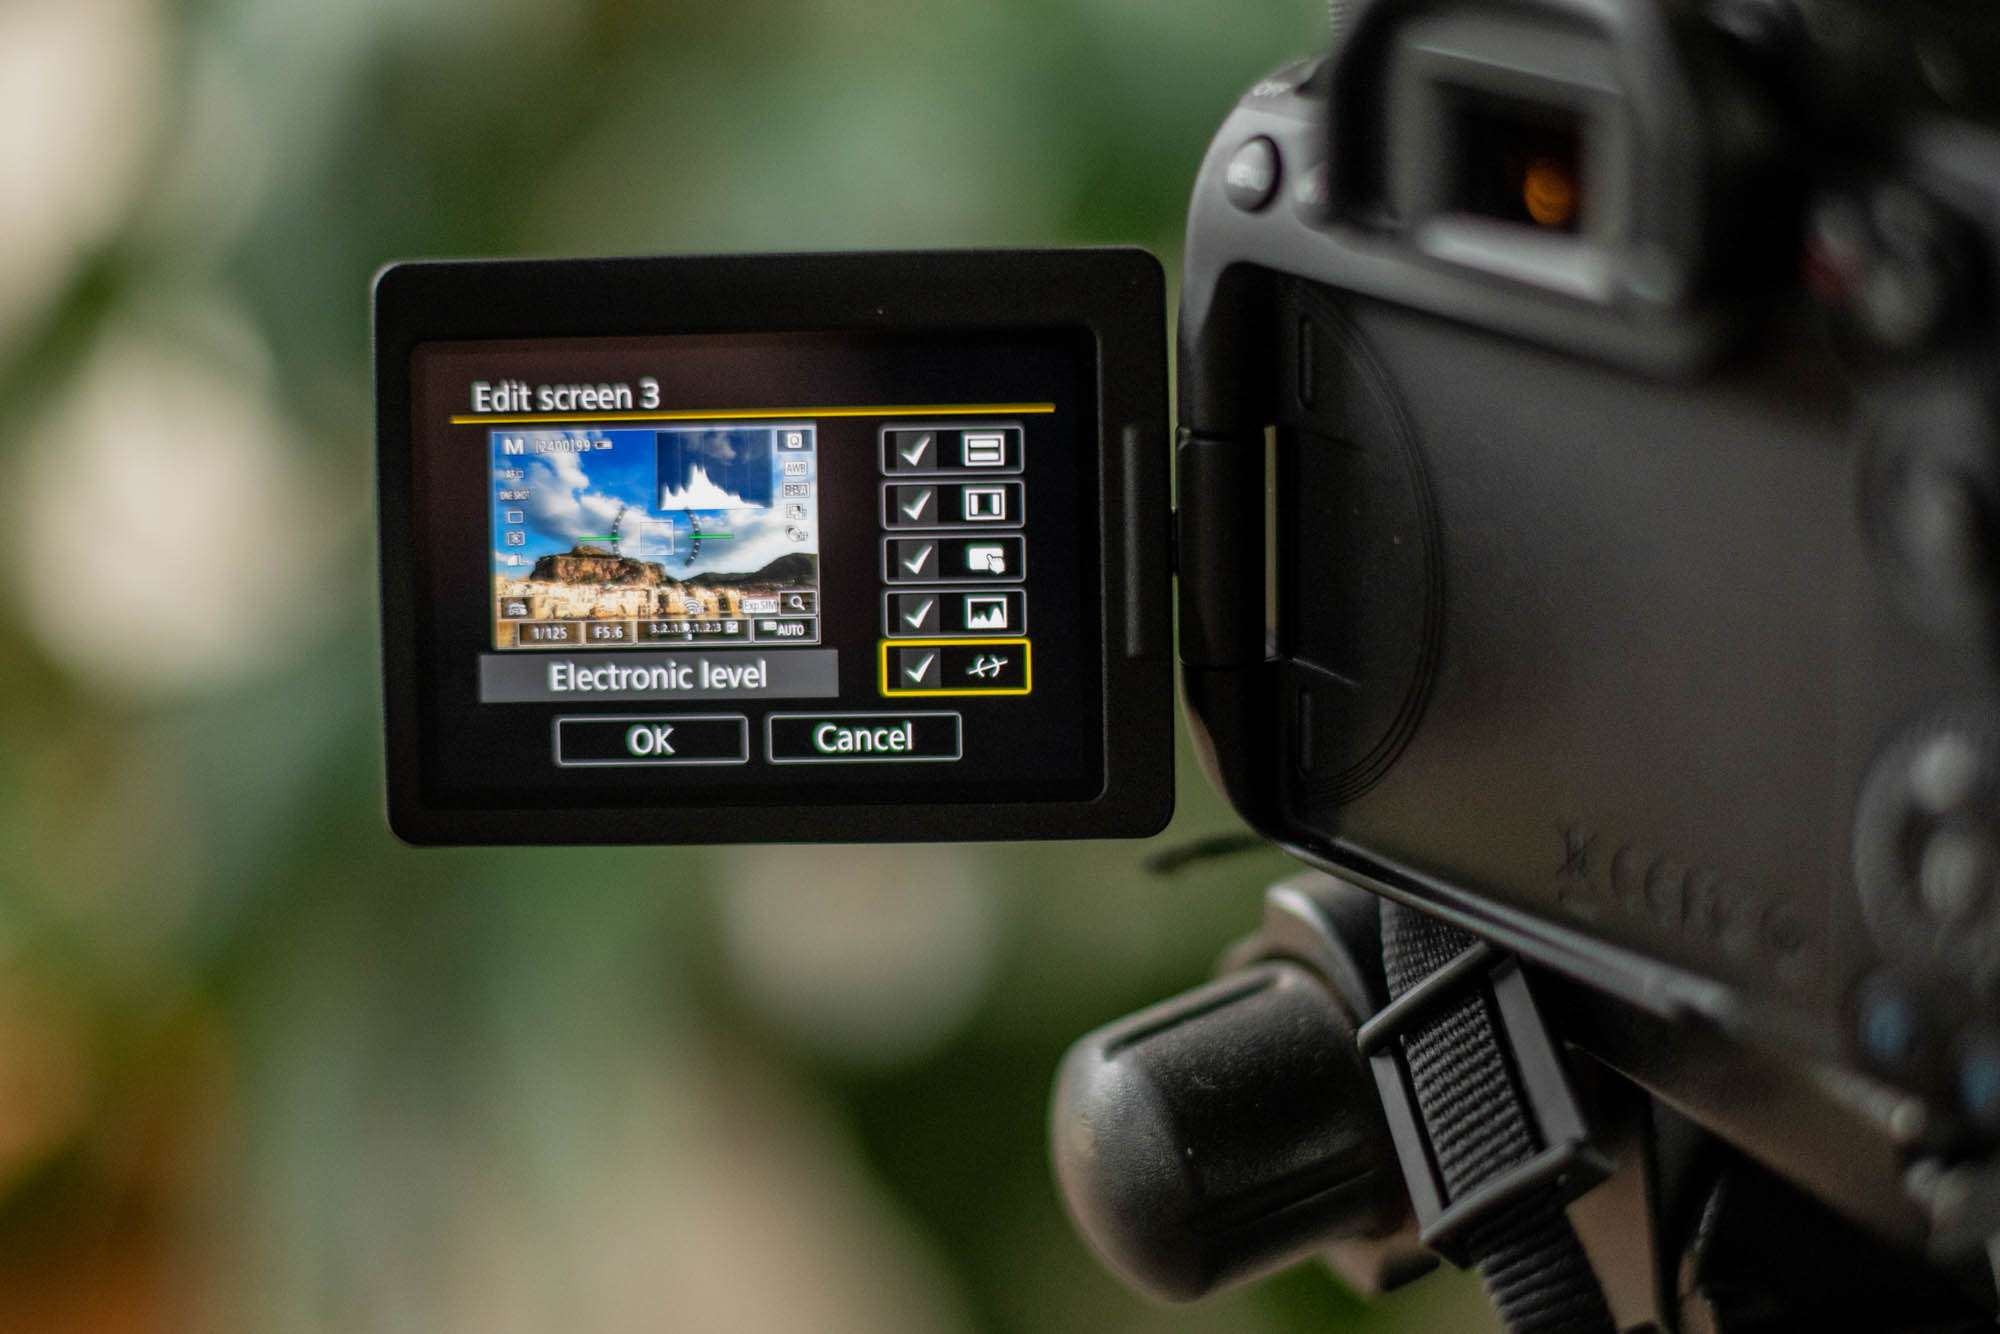 The electronic level feature displayed on the LCD screen of a digital camera